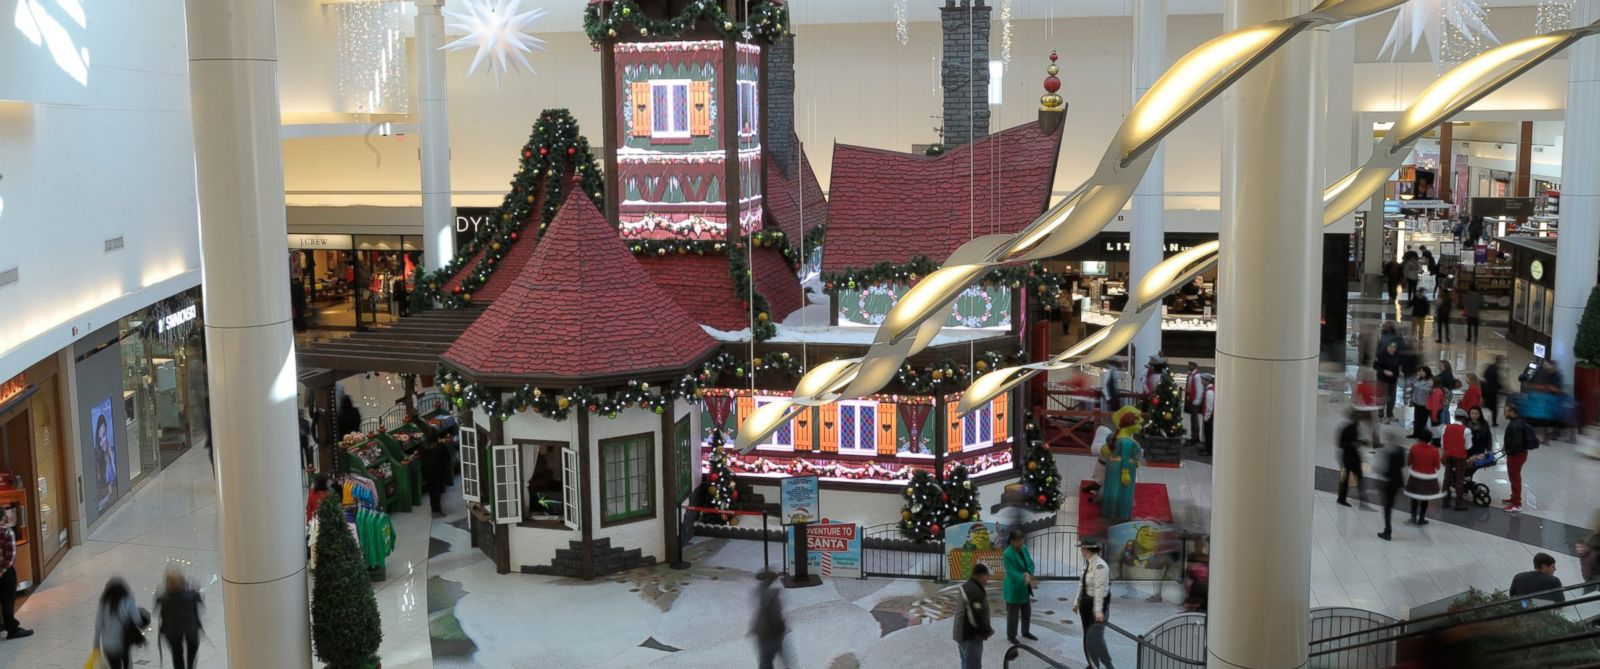 Labelscar: The Retail History BlogGrand Avenue Mall Santa pictures natick mall